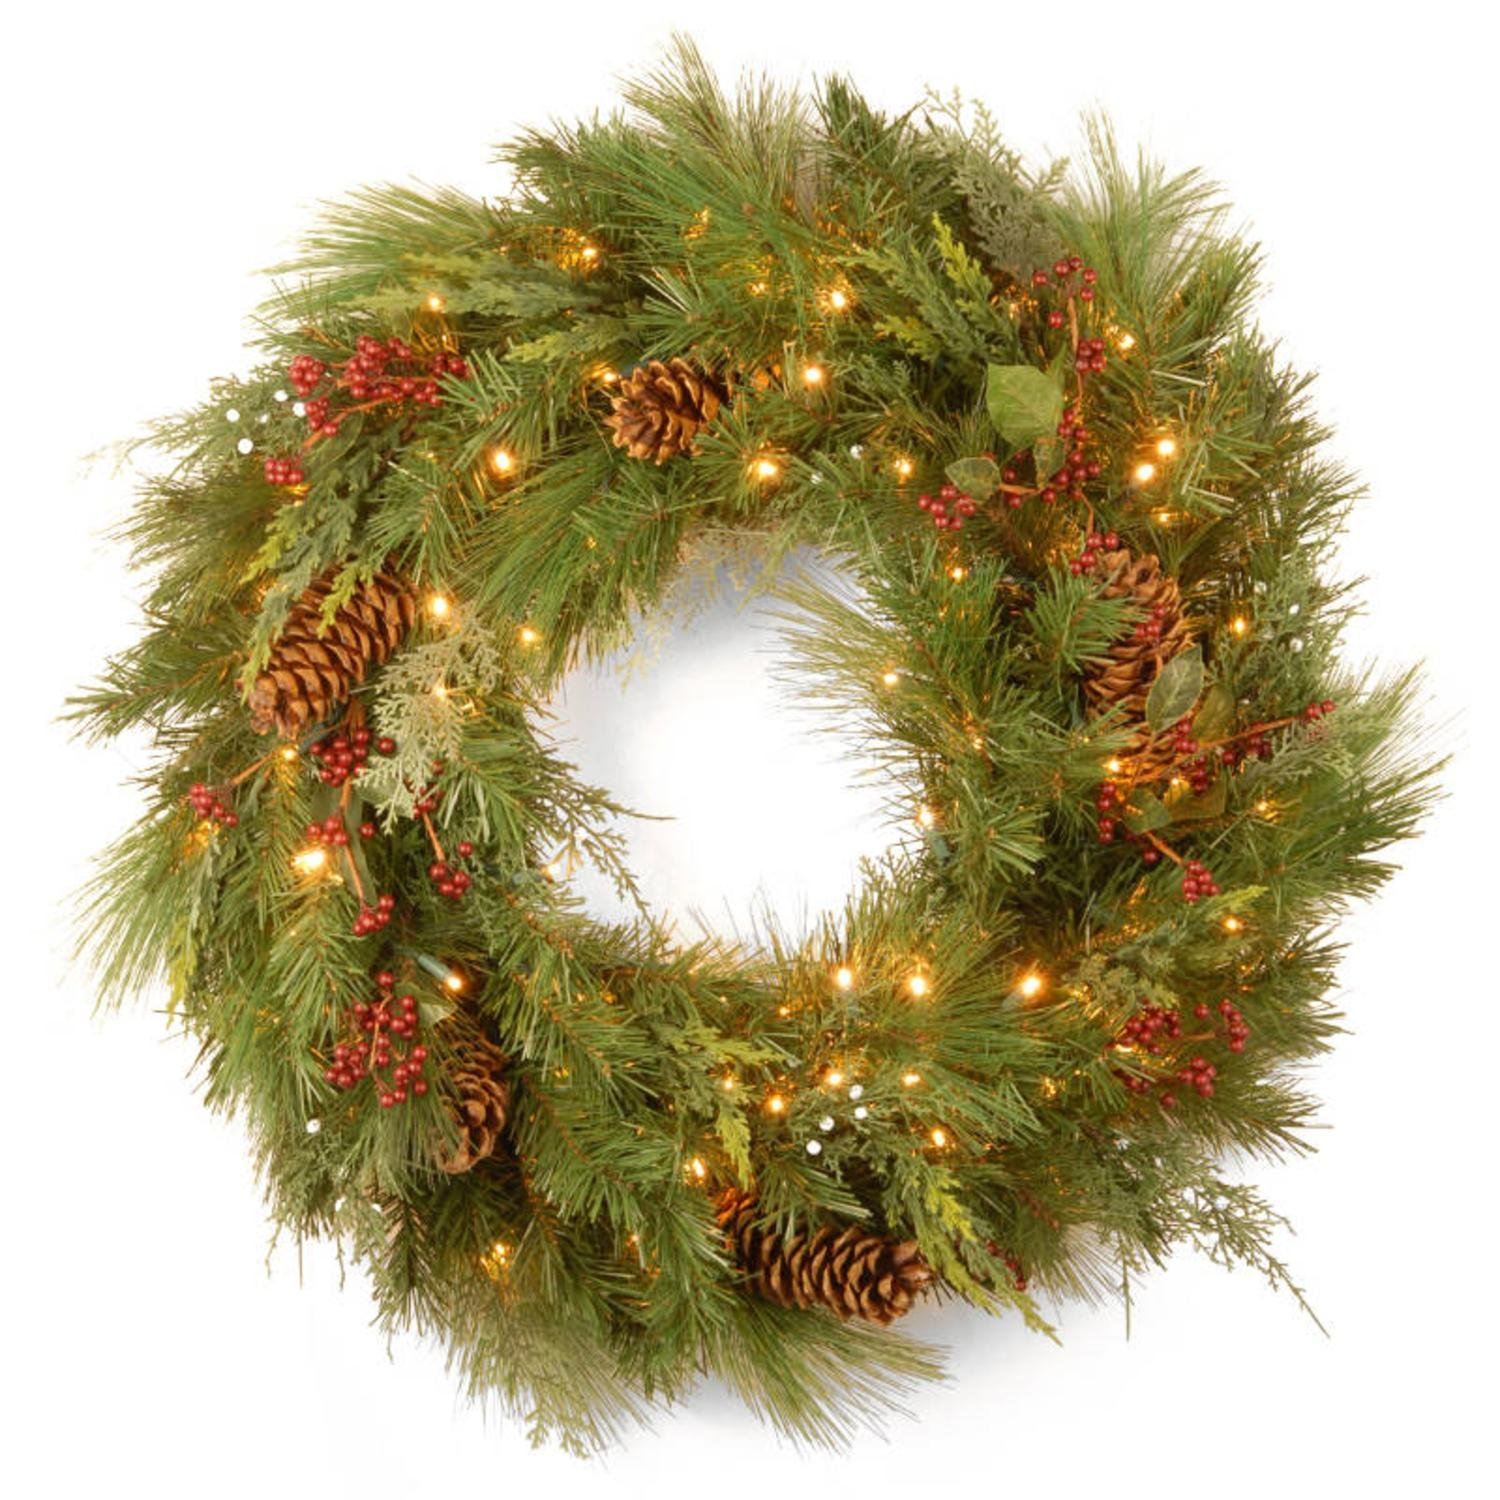 30'' Pre-Lit Battery-Operated White Pine Artificial Christmas Wreath - Warm Clear LED Lights